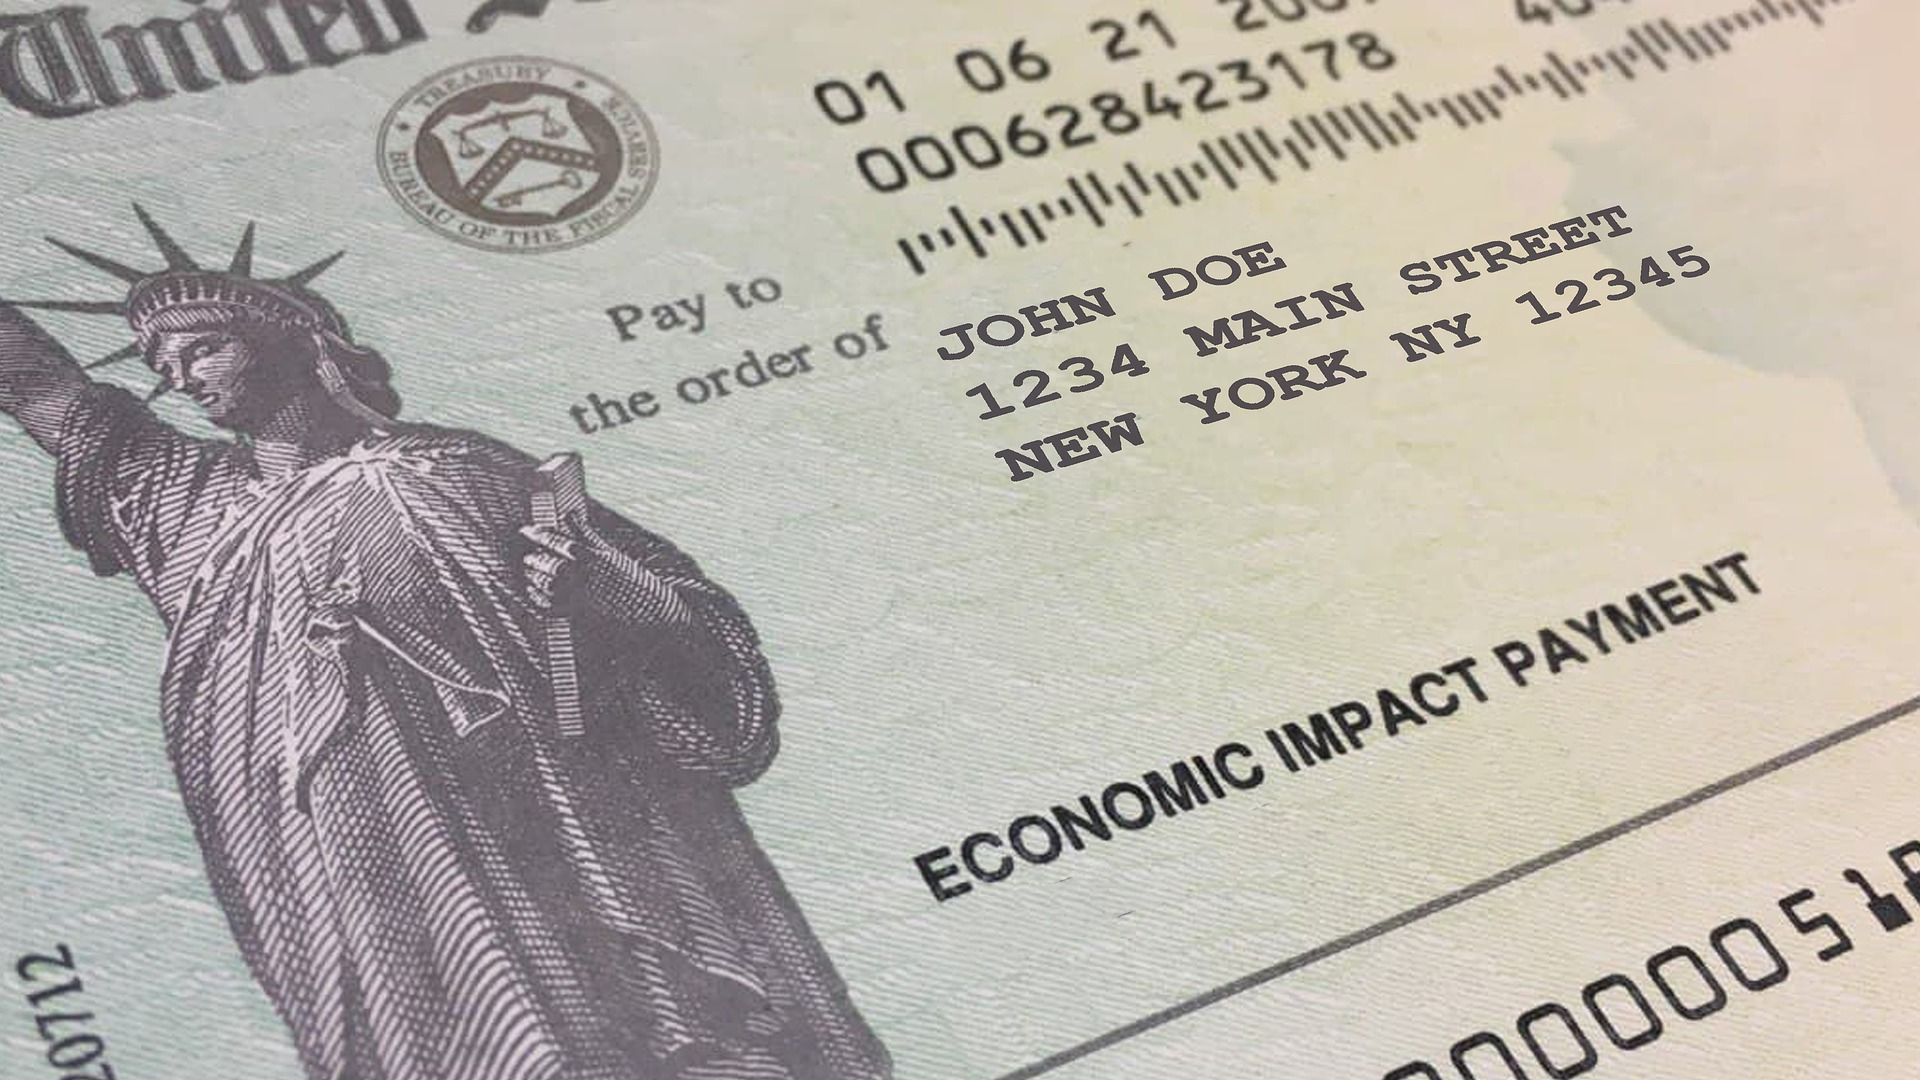 Up to 50% of Covid-19 Unemployment Relief May Have Been Fraudulently Claimed